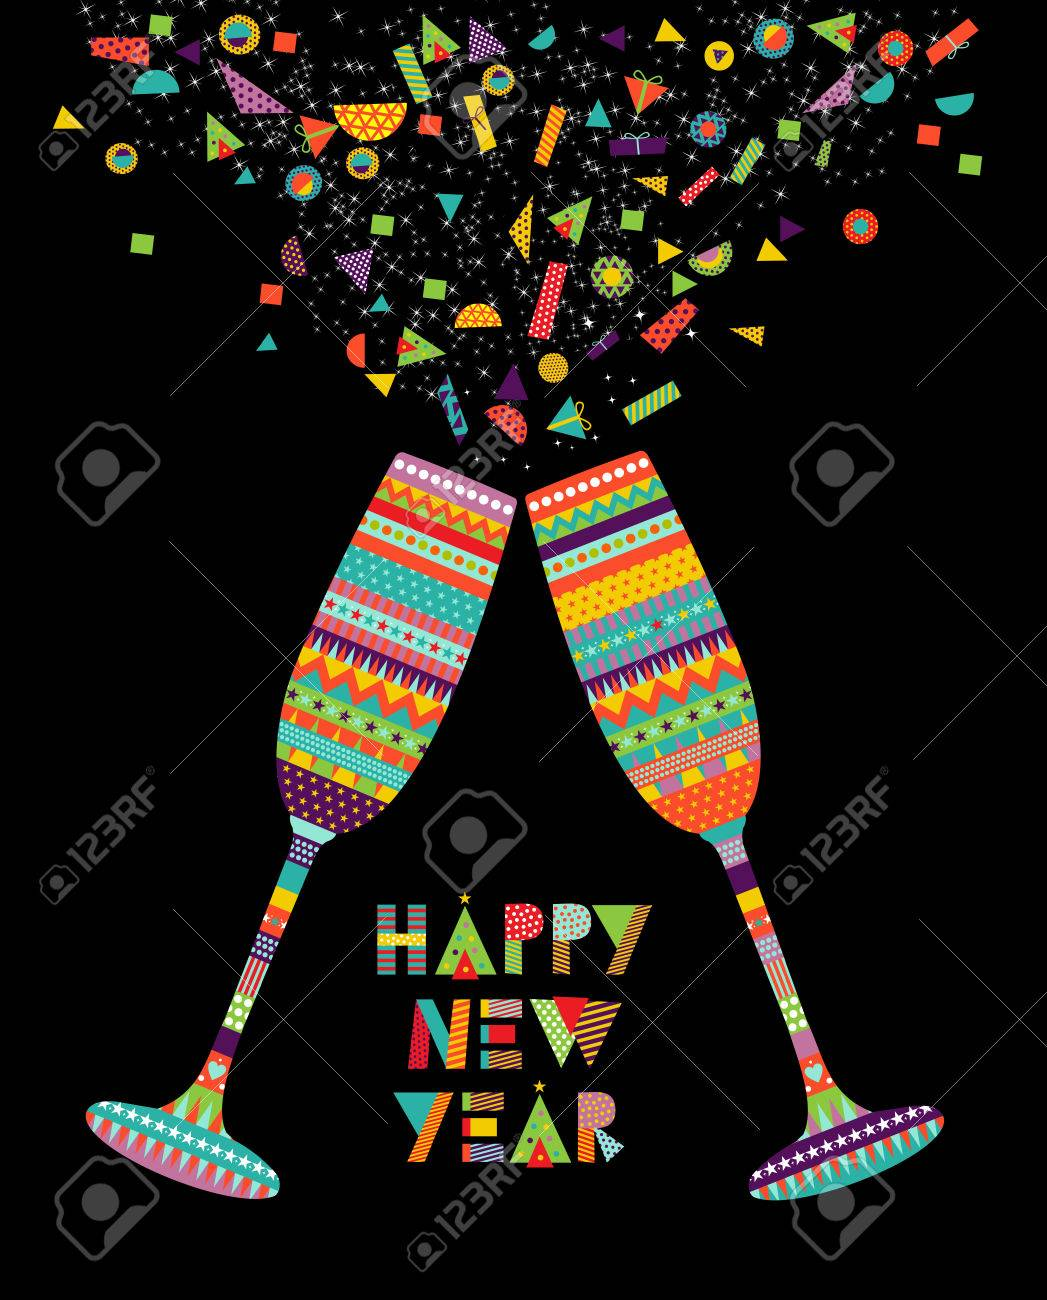 fun happy new year card design with drink glass making toast and colorful decoration eps10